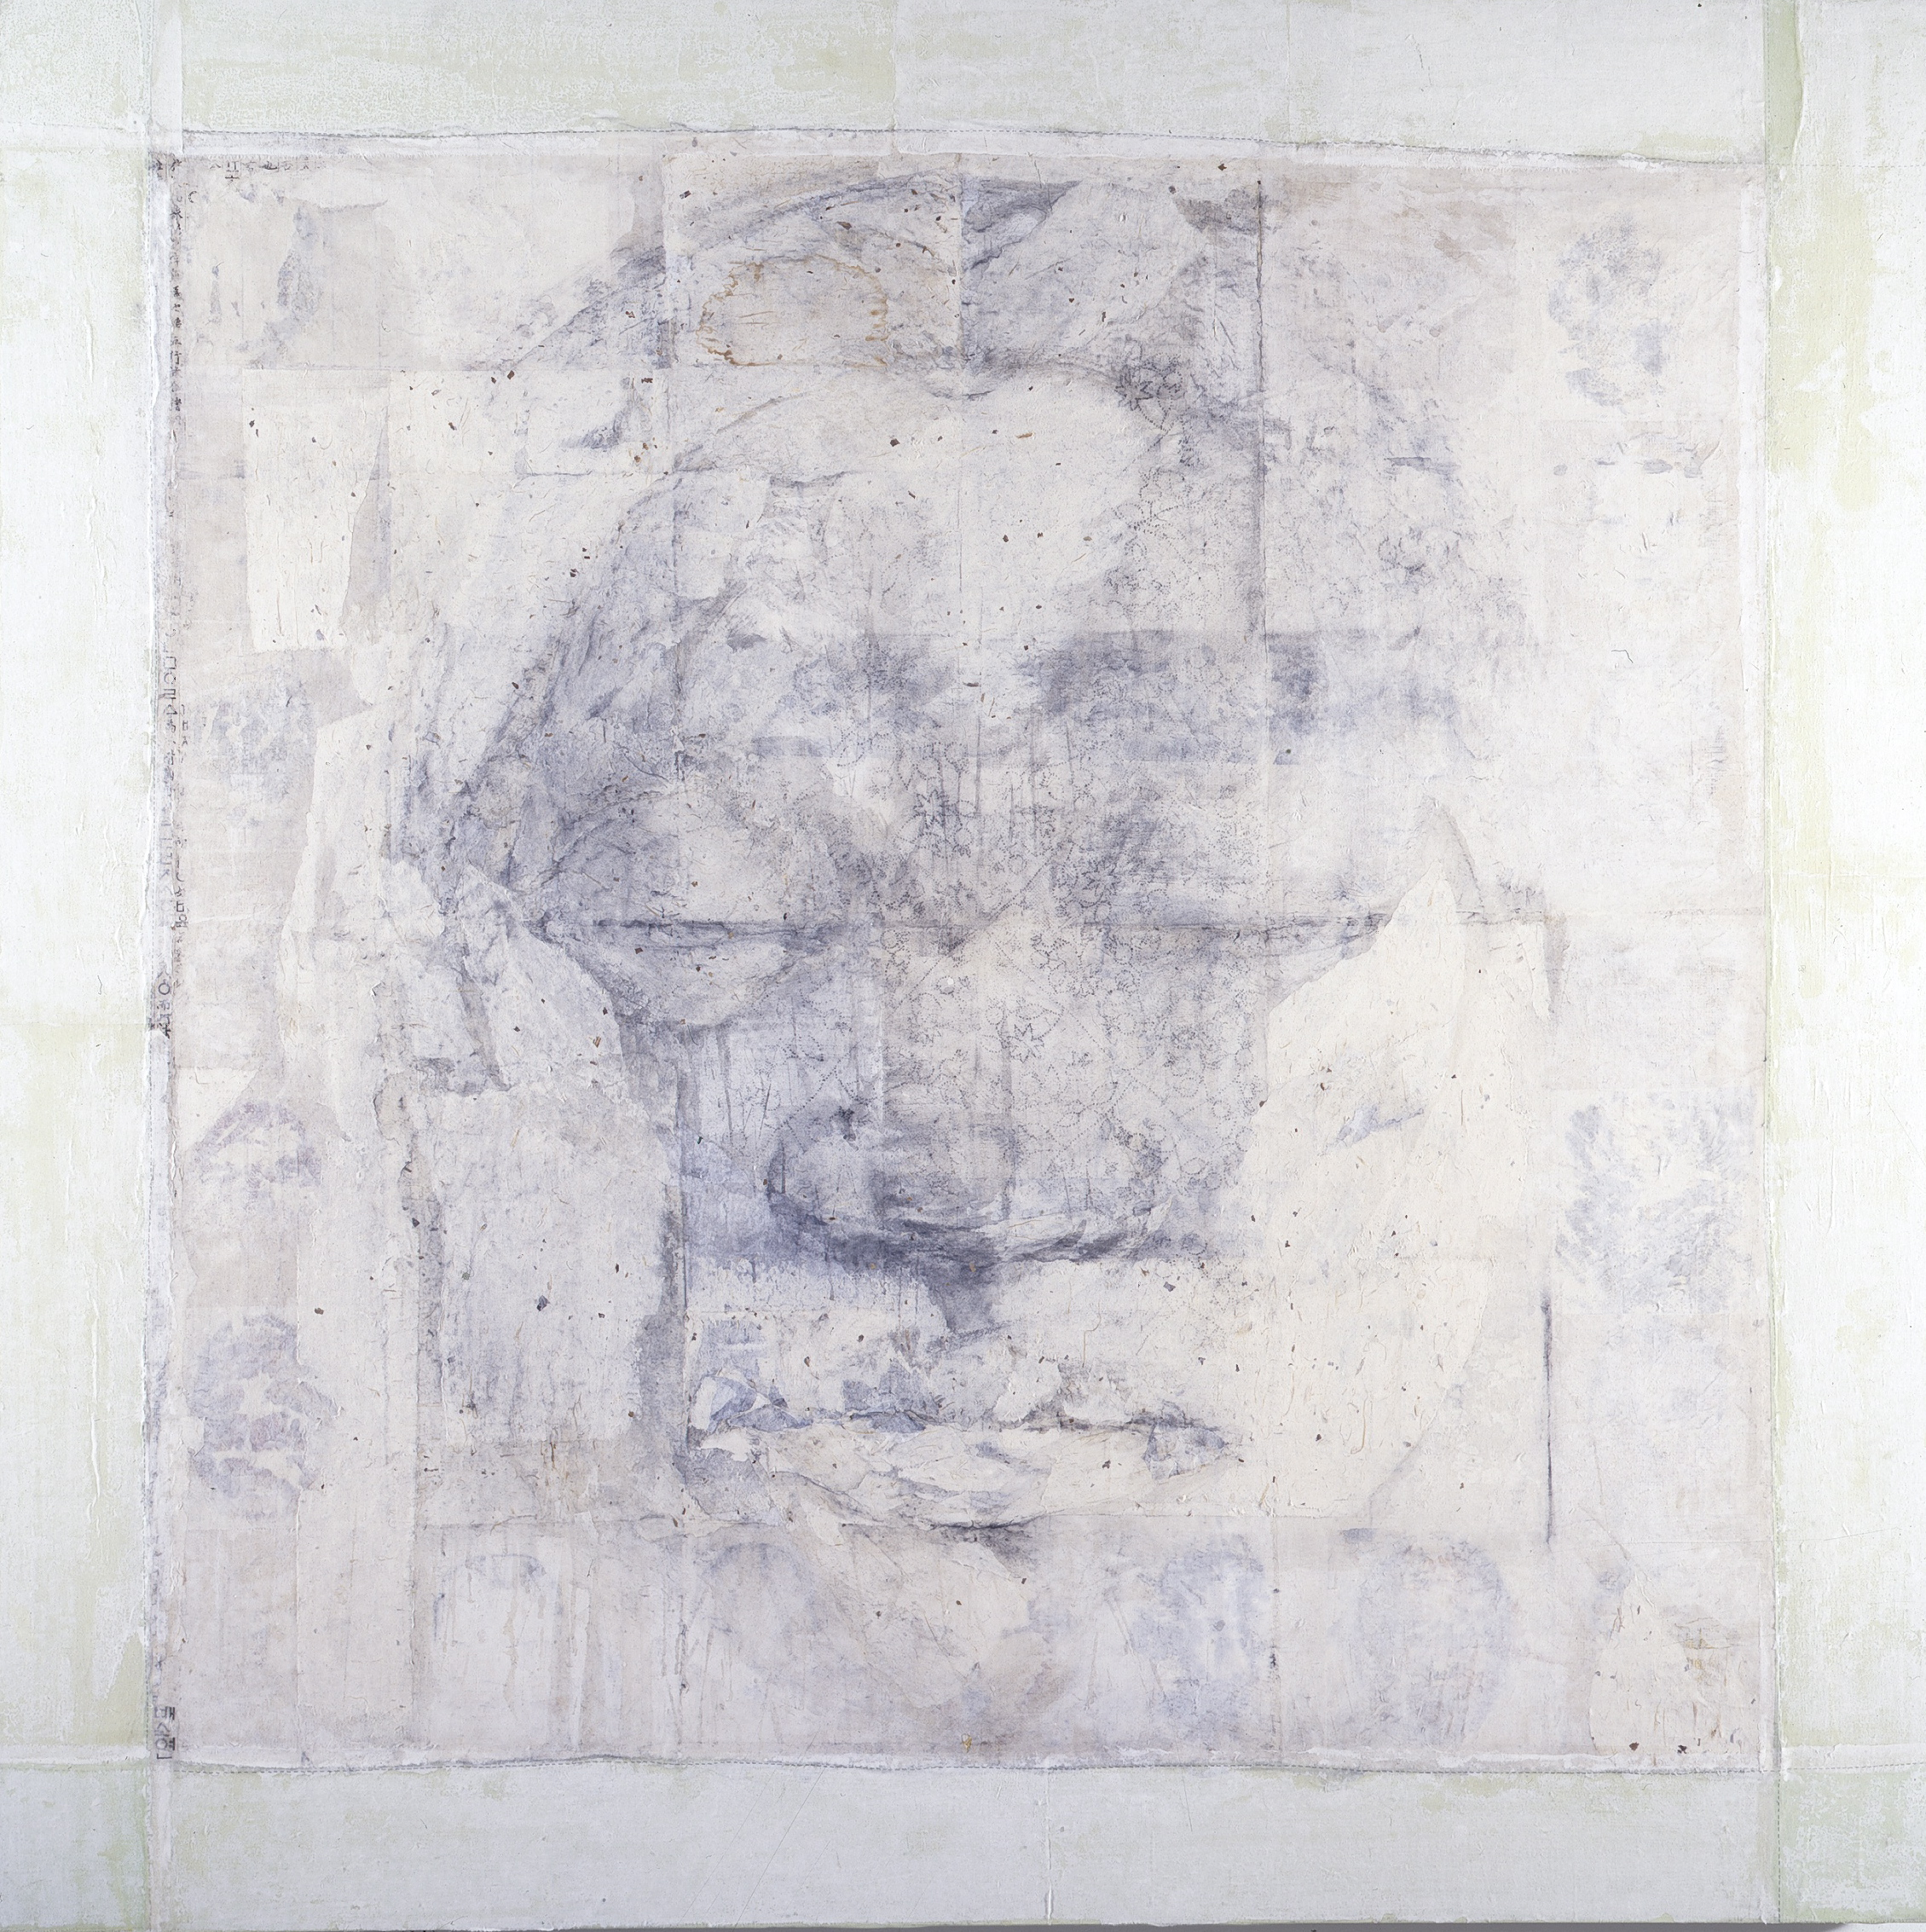 SoHyun Bae, A Woman of Josun Dynasty: Colossal Head V, 1998, pencil, rice-paper, fabric on canvas, 81 x 81 inches